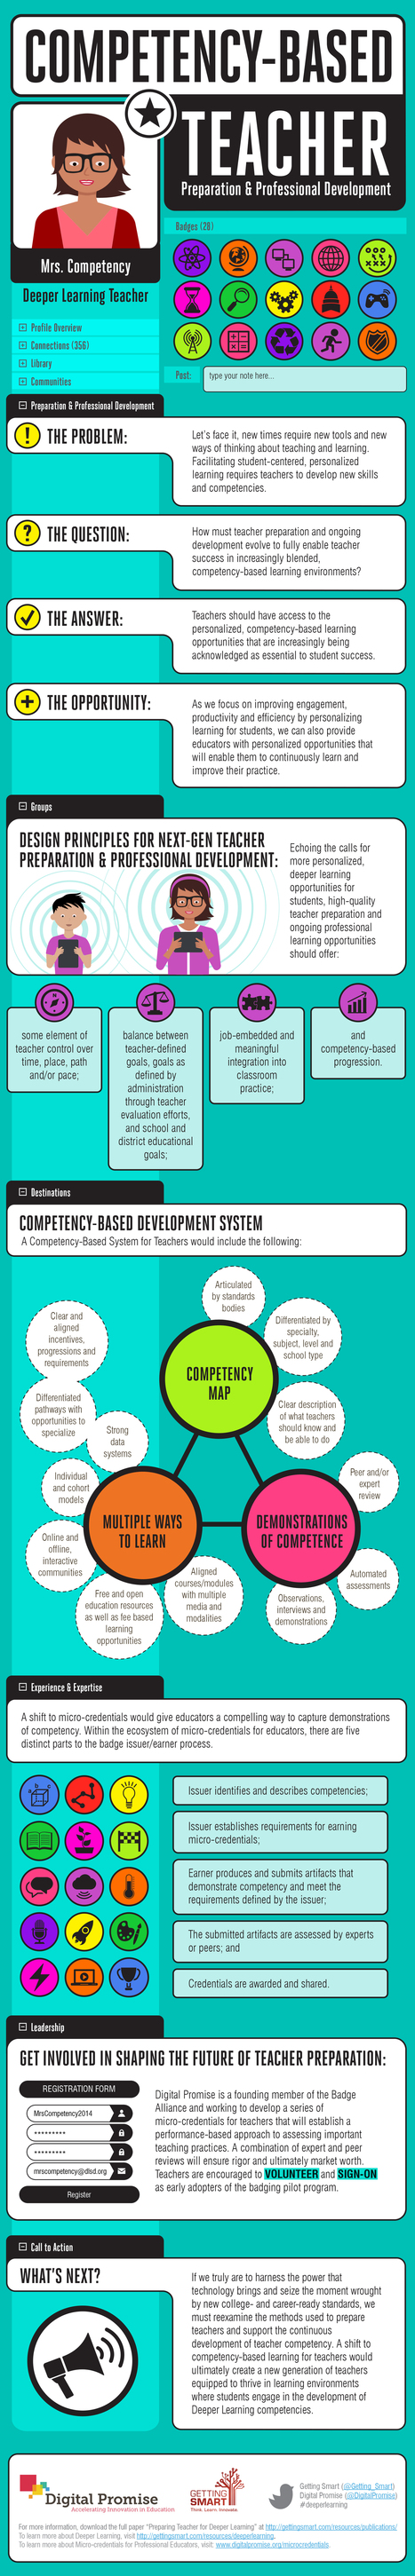 Infographic: Competency-Based Teacher Prep & PD | Education Technologies | Scoop.it | Scoop.it